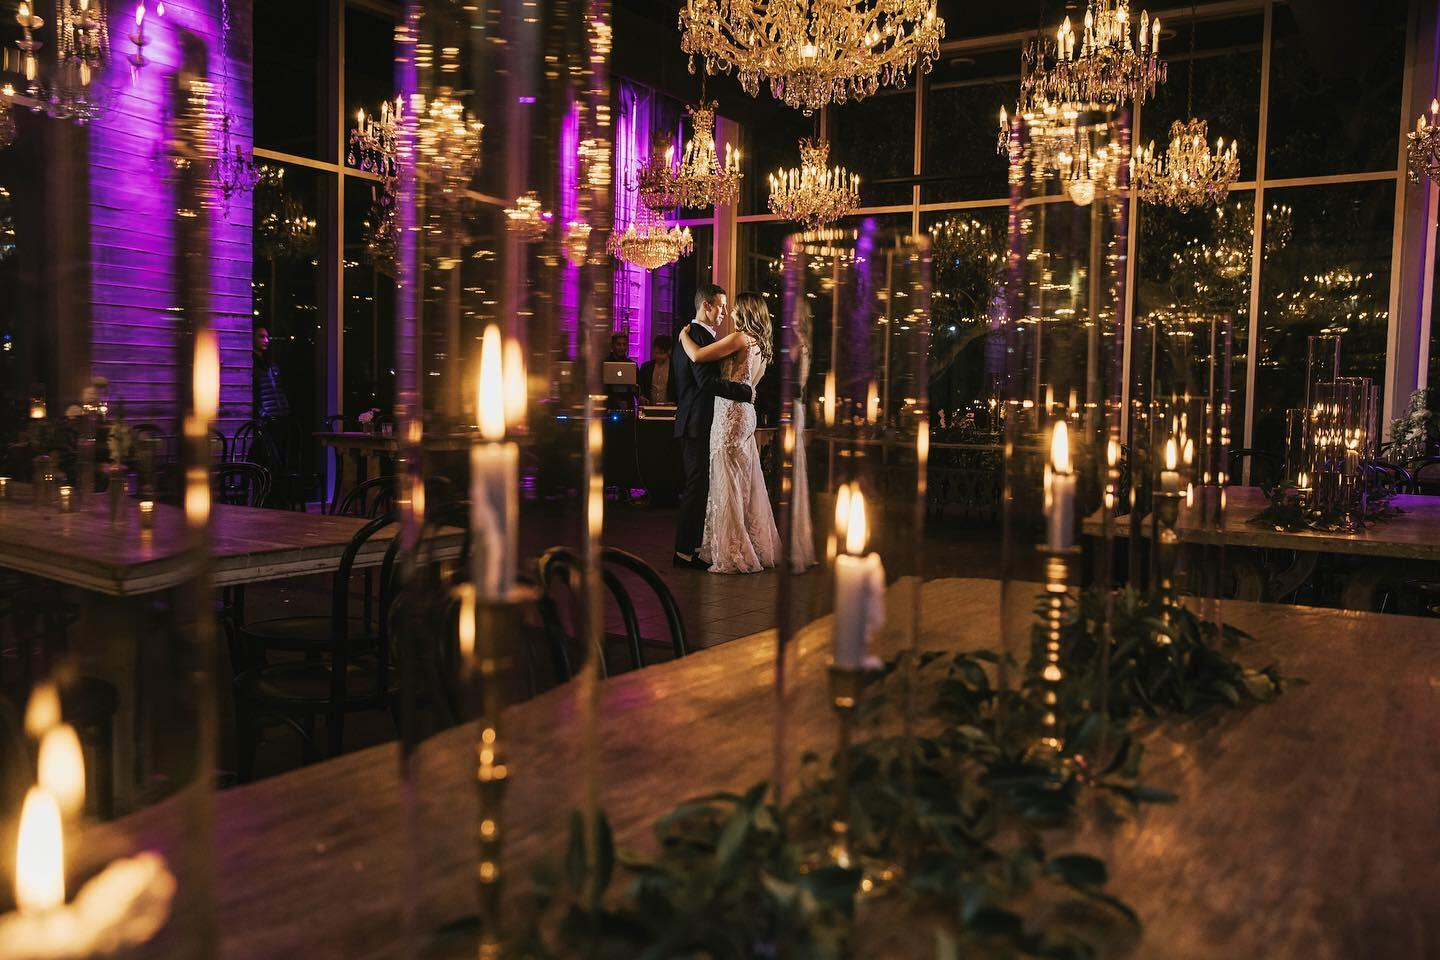 A glimpse of the bride & groom dancing in a hall decorated with chandeliers & candles